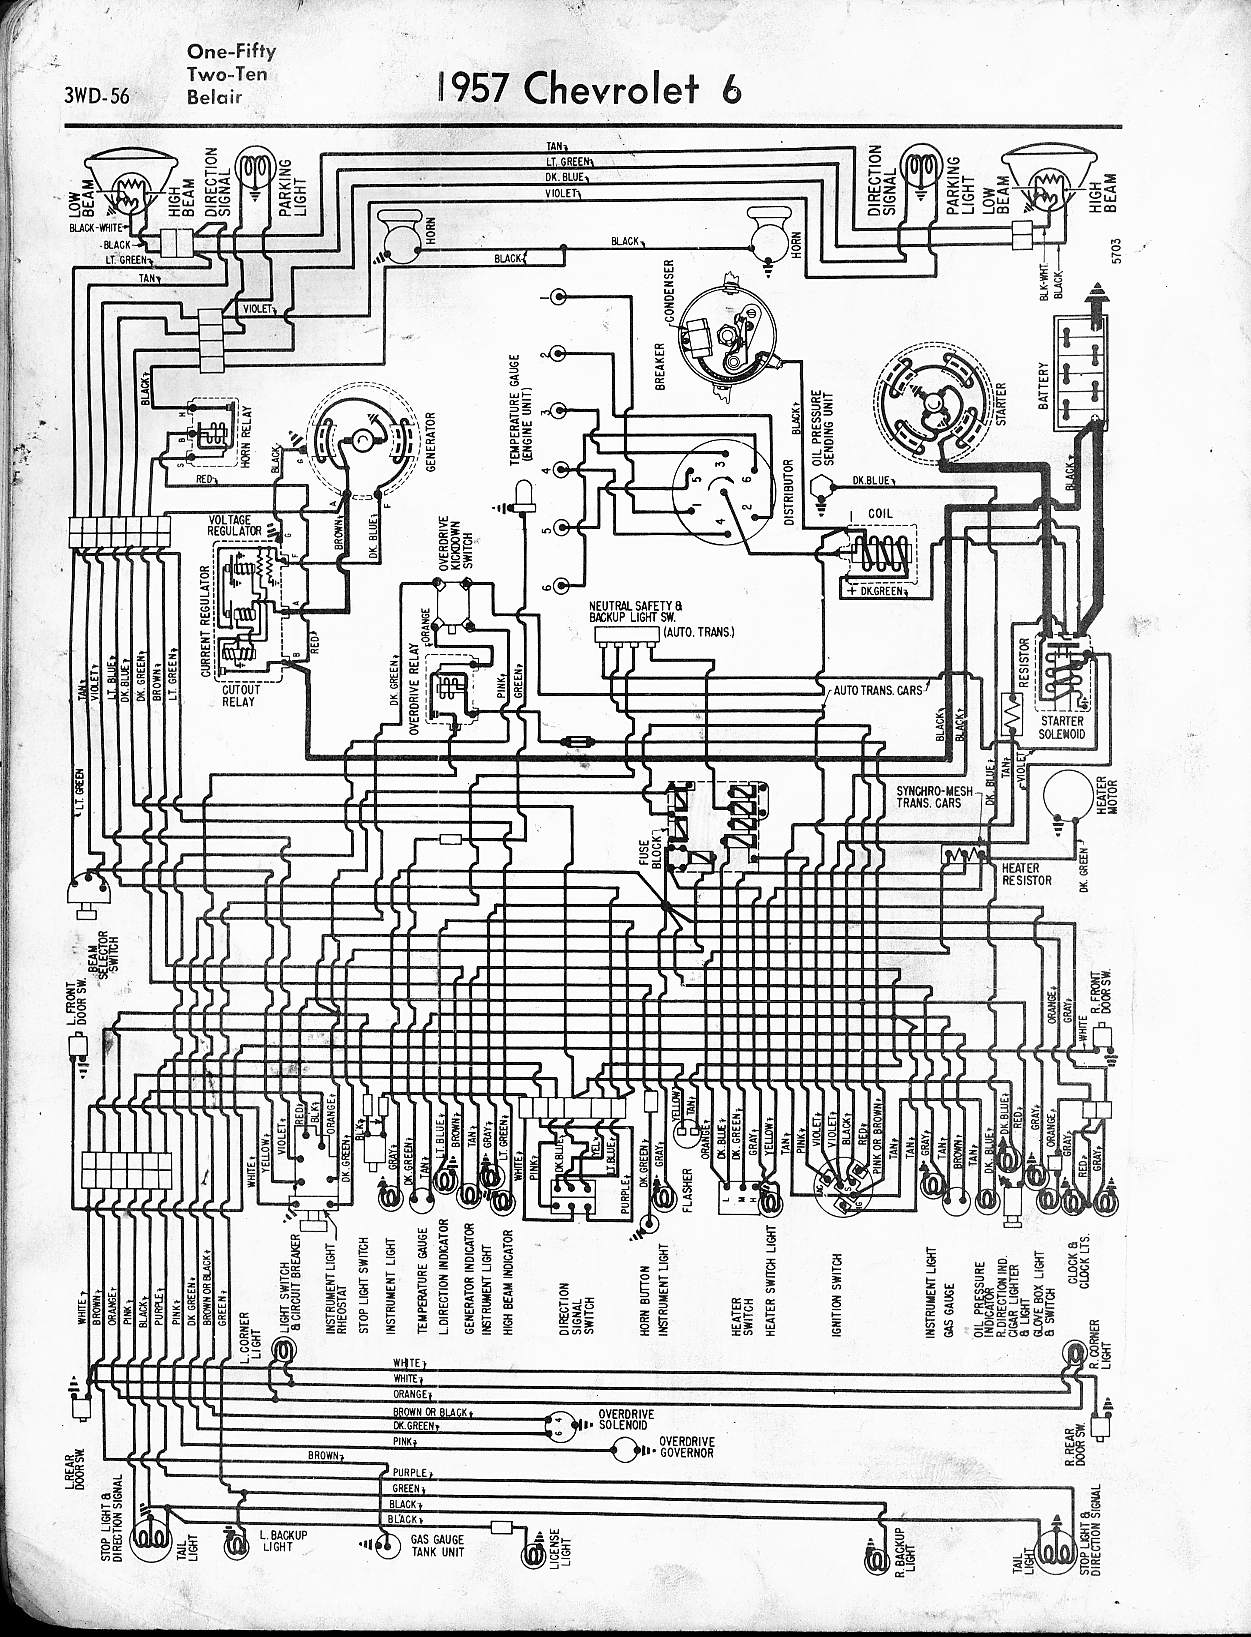 56 Chevy Wiring Diagram from www.oldcarmanualproject.com